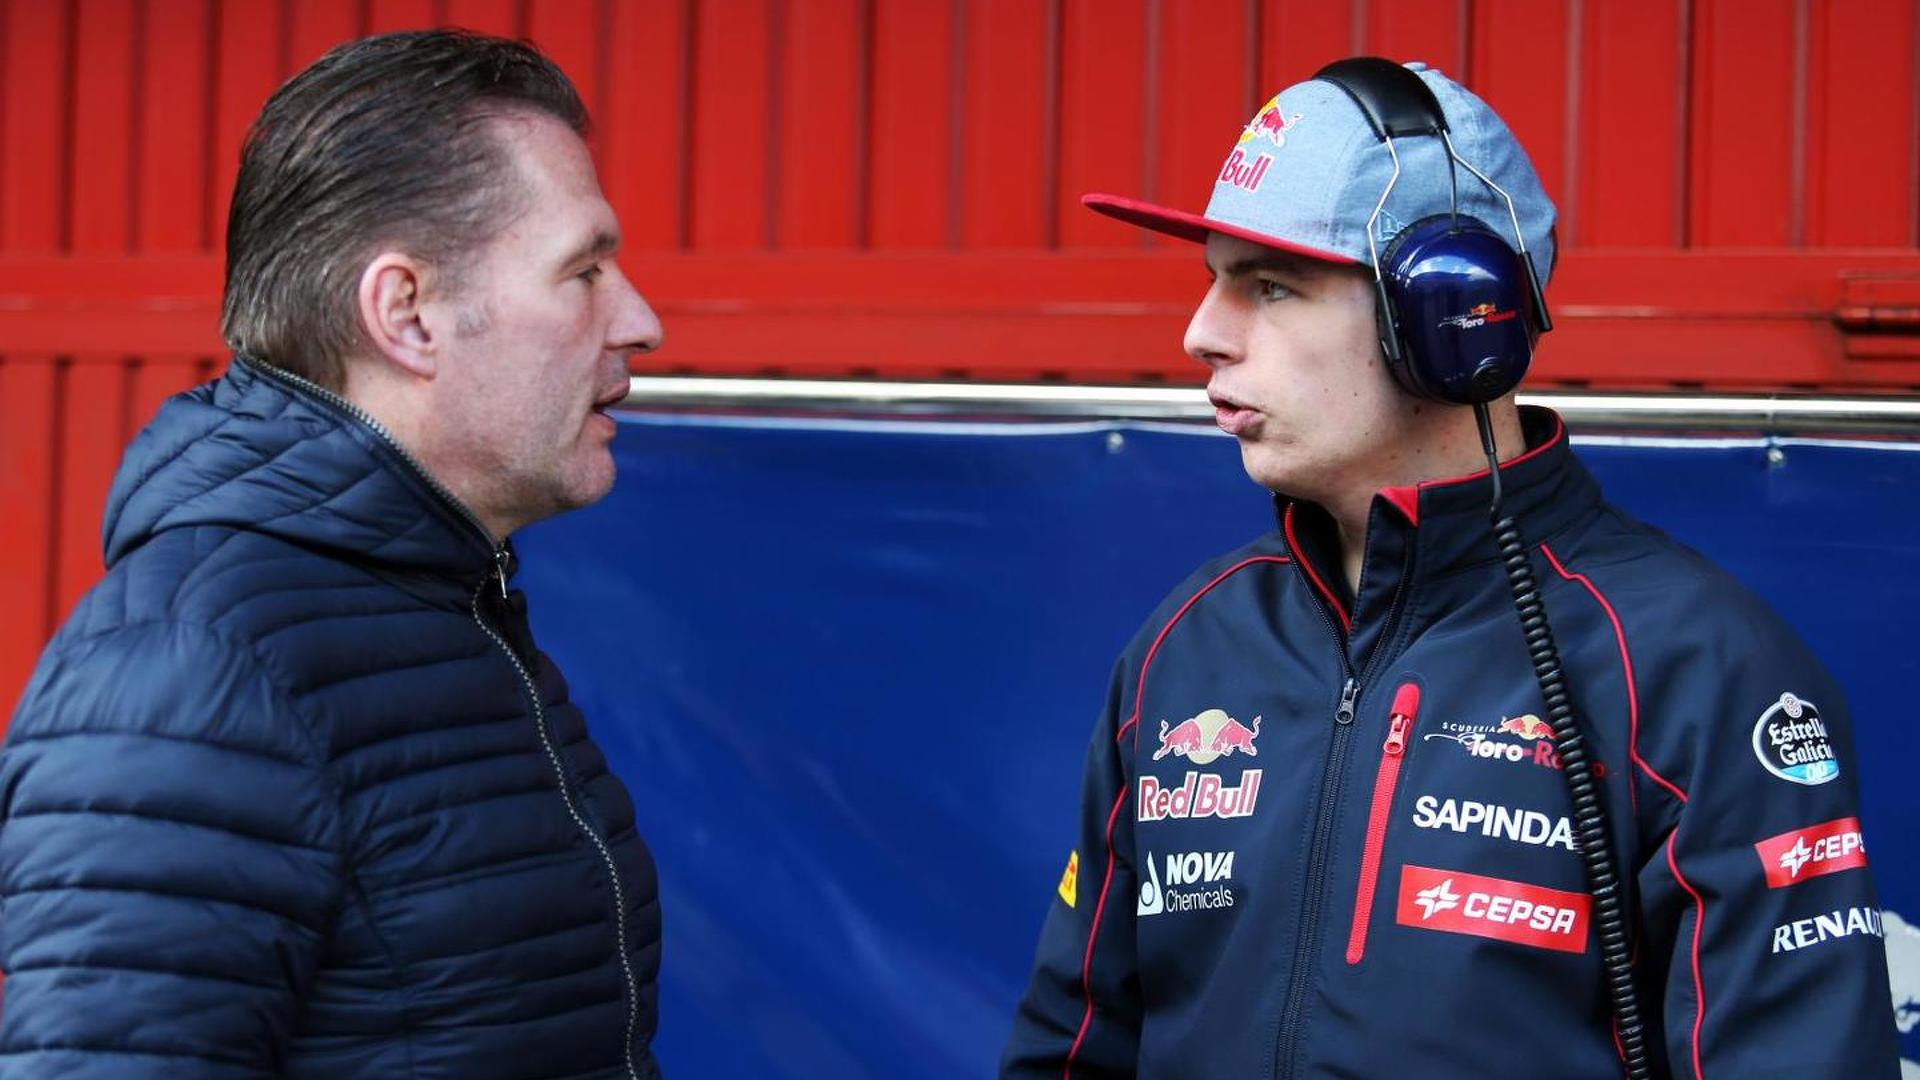 Now Verstappen's father slams Renault